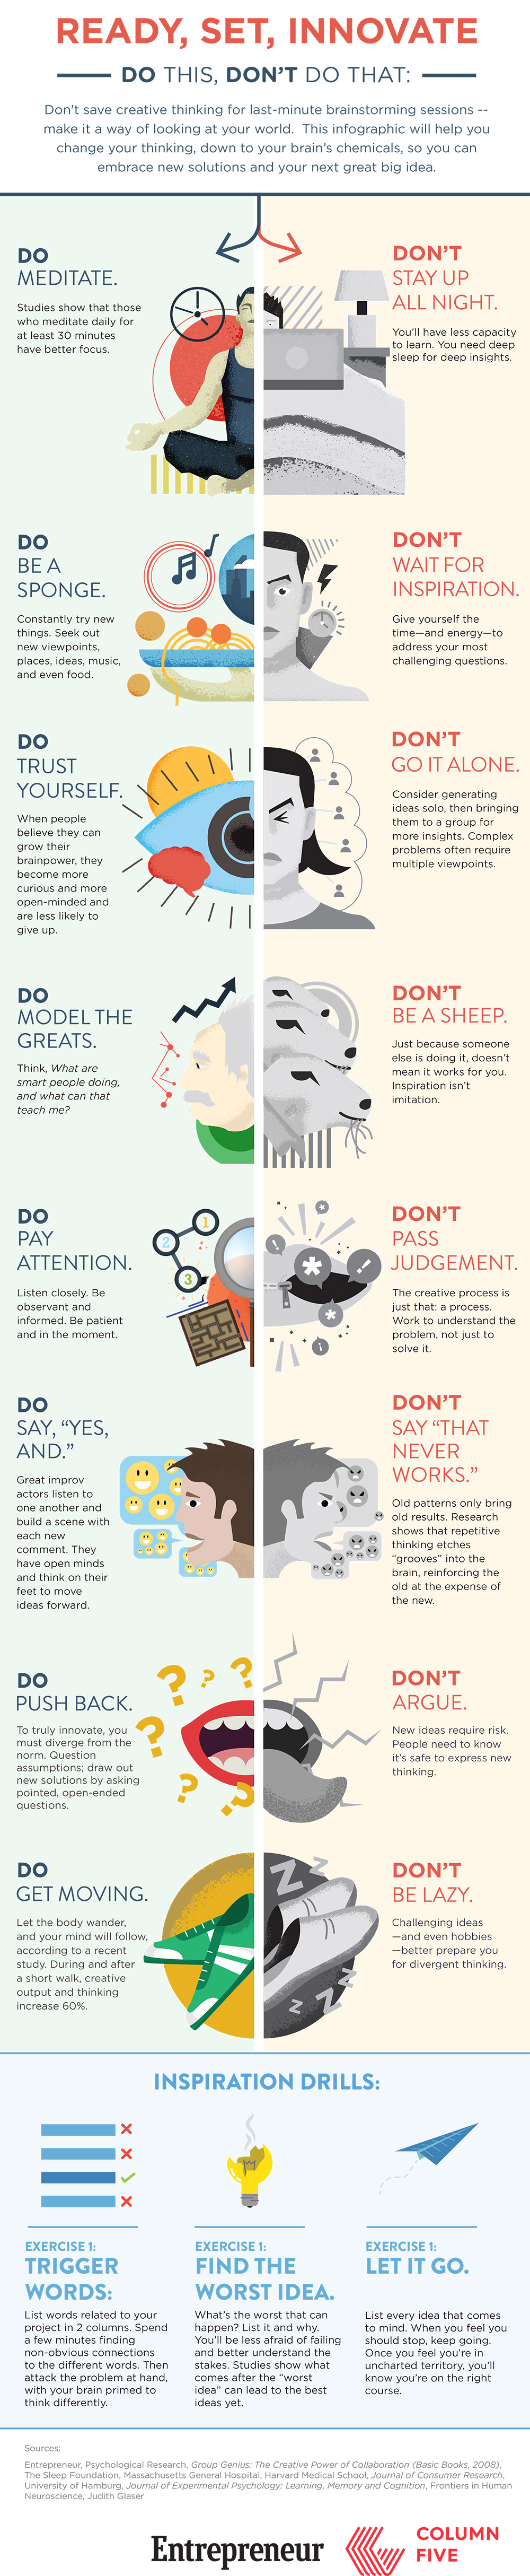 ready-set-innovate-how-to-avoid-killing-your-own-creativity-infographic